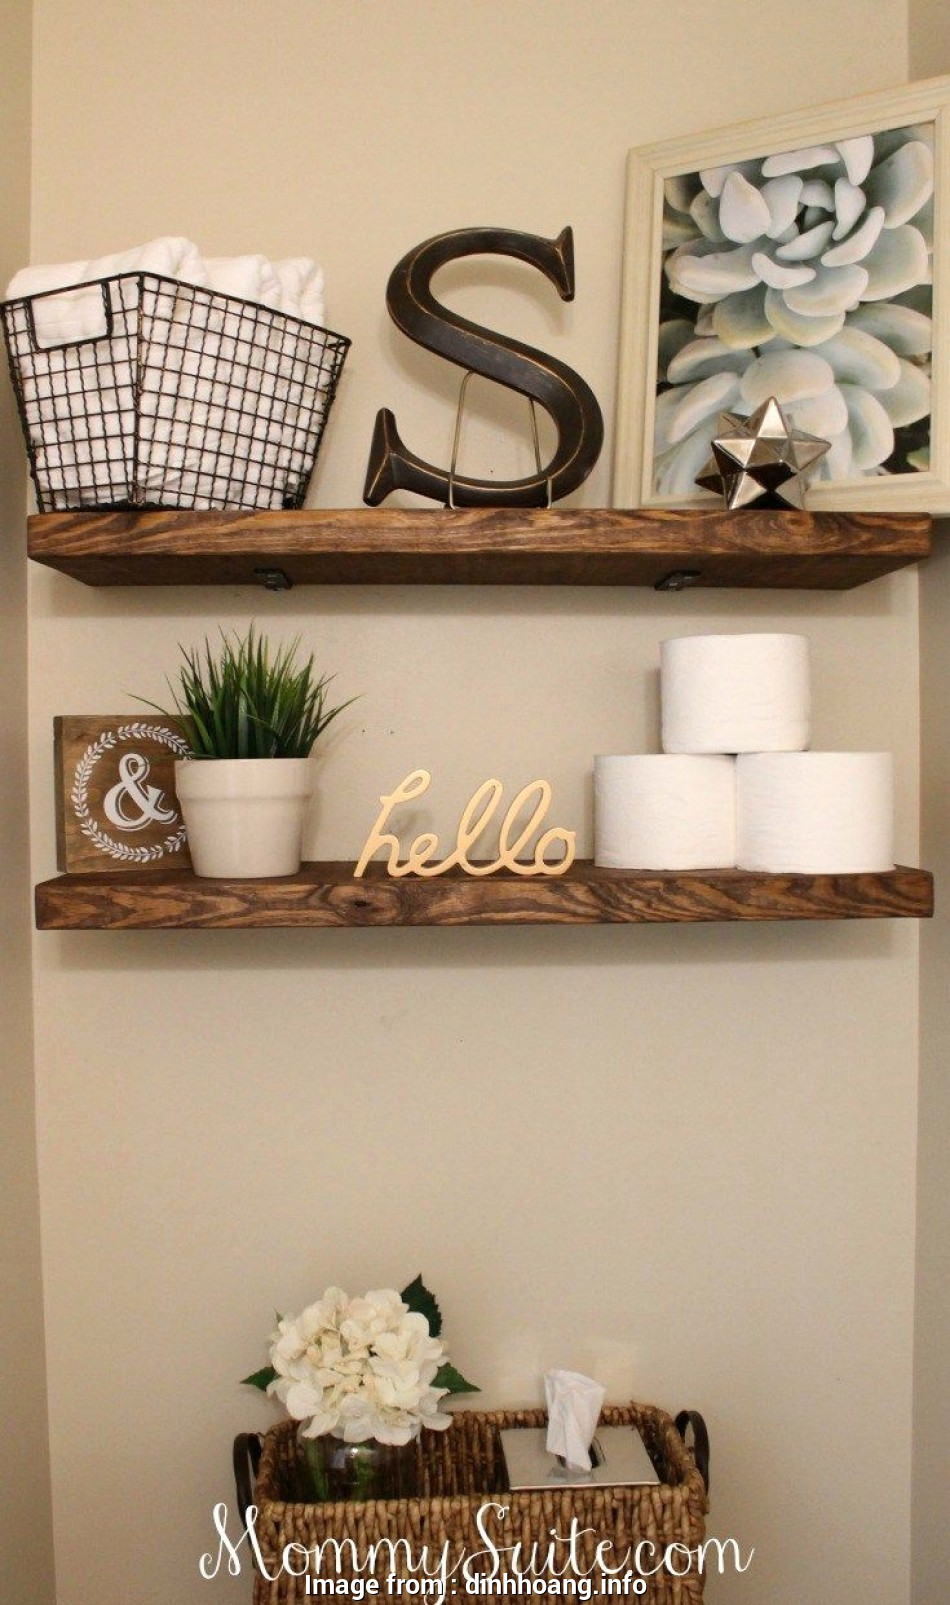 wire shelving decorating ideas 50 Best Of Wire Shelving Decorating Ideas, Shelves Inspiration 10 Cleaver Wire Shelving Decorating Ideas Solutions